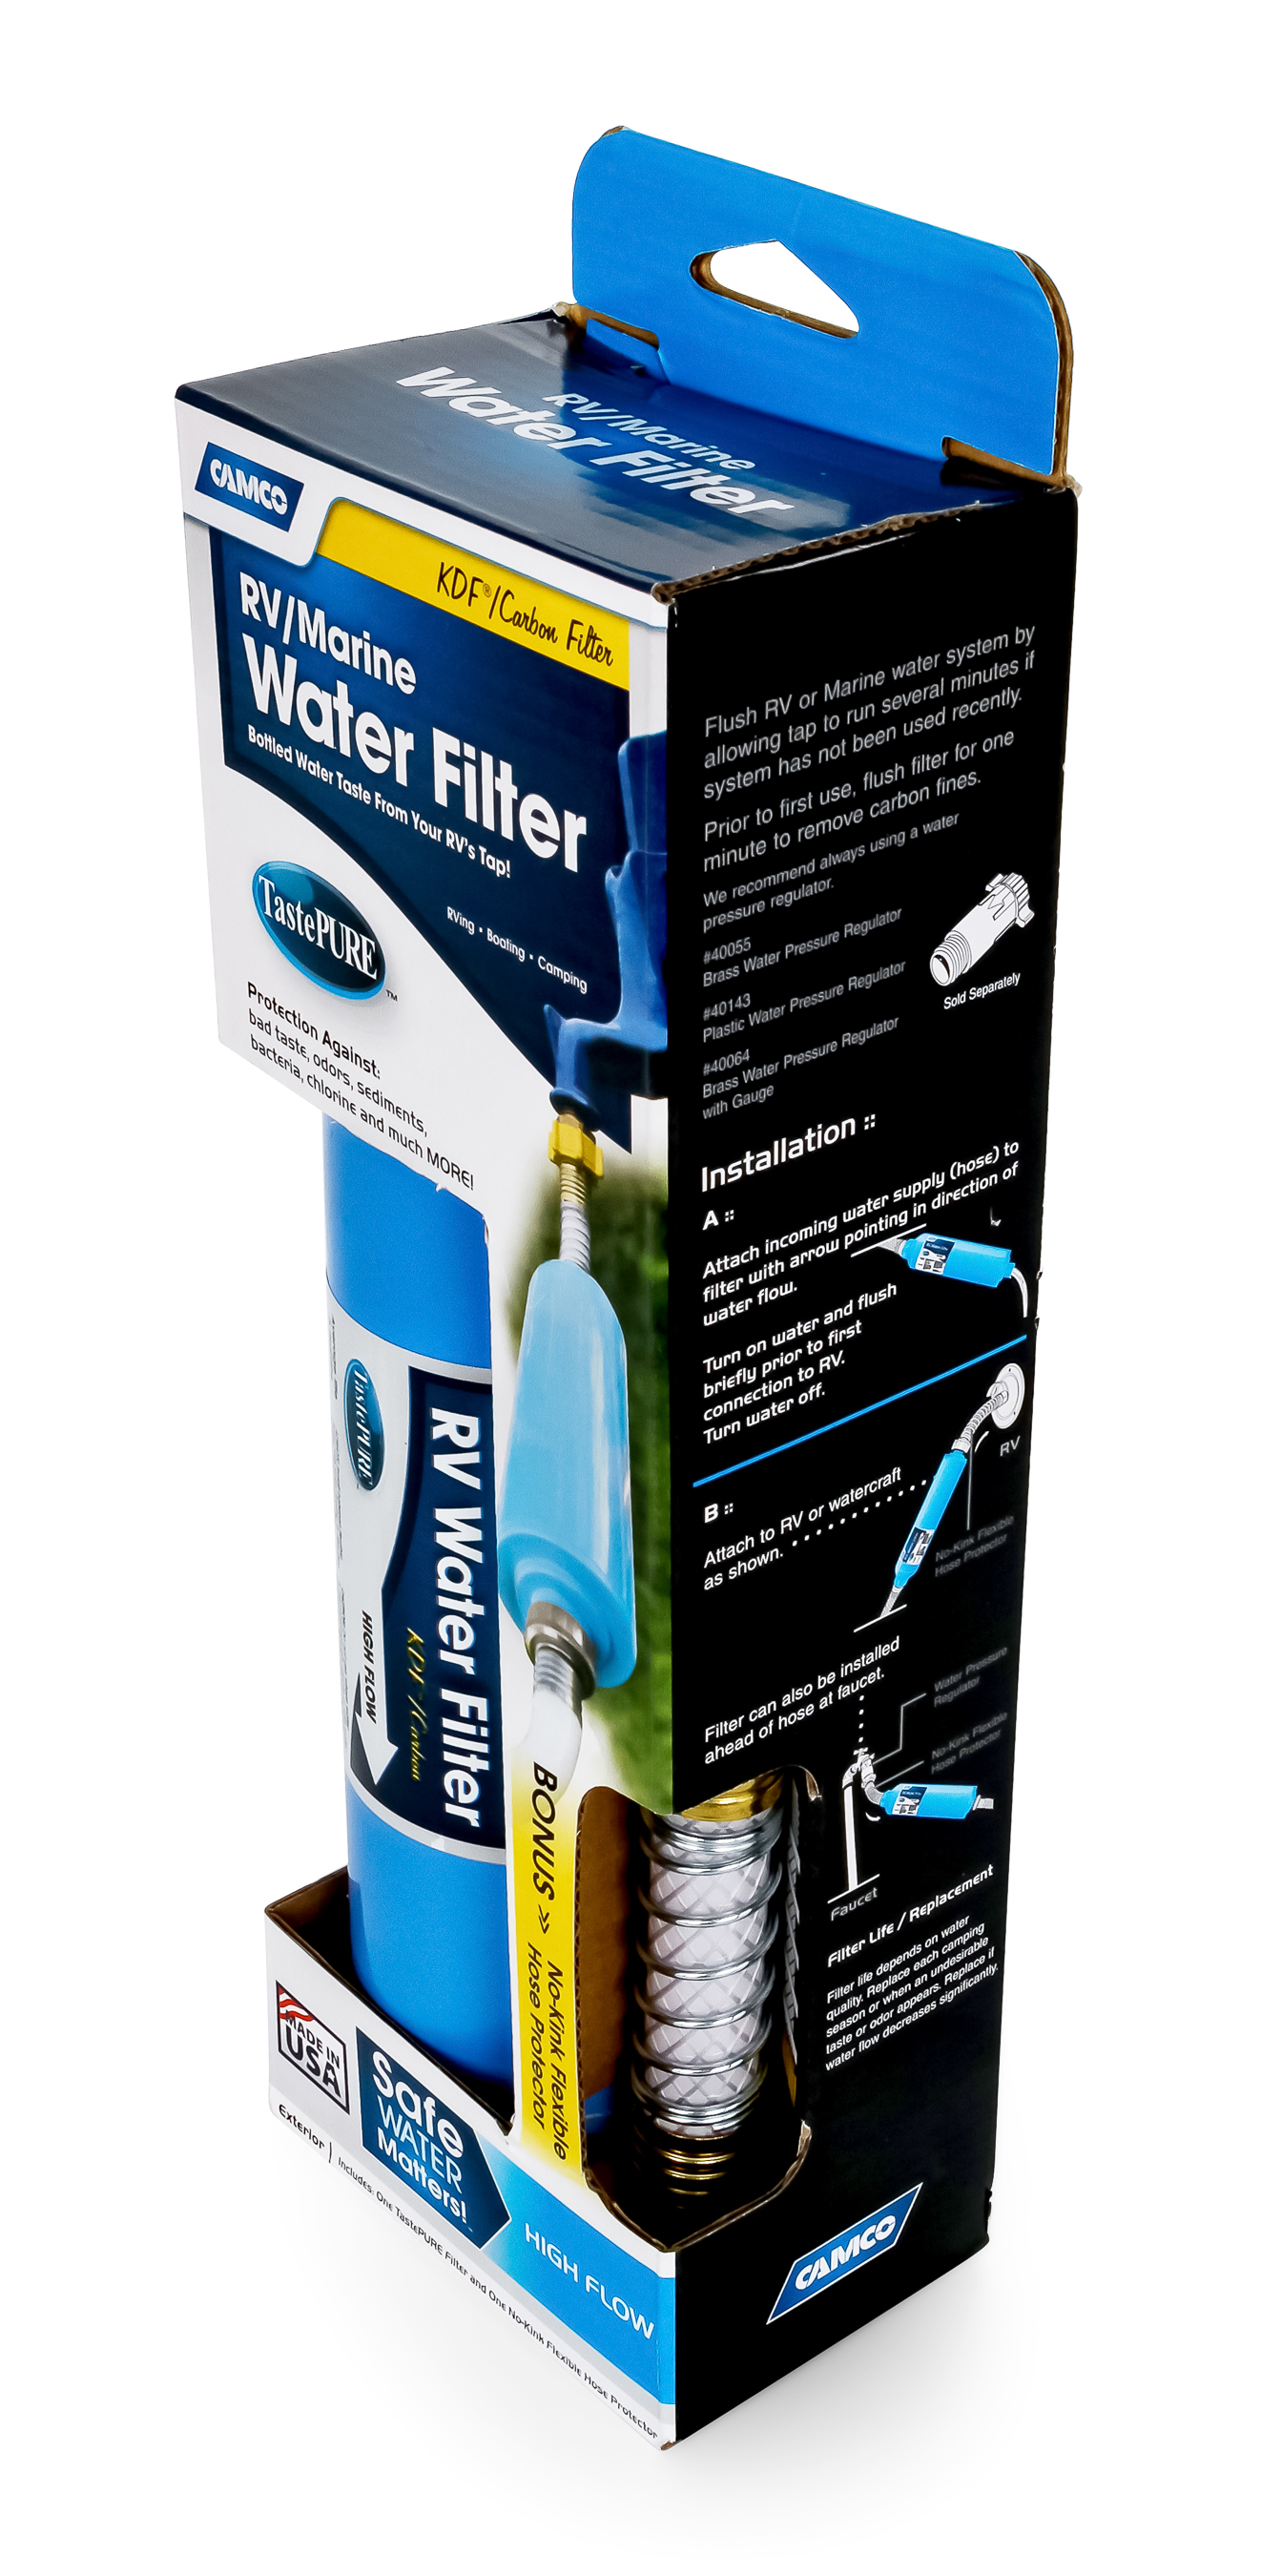 Camco 40043 TastePURE Water Filter with Flexible Hose Protector ...